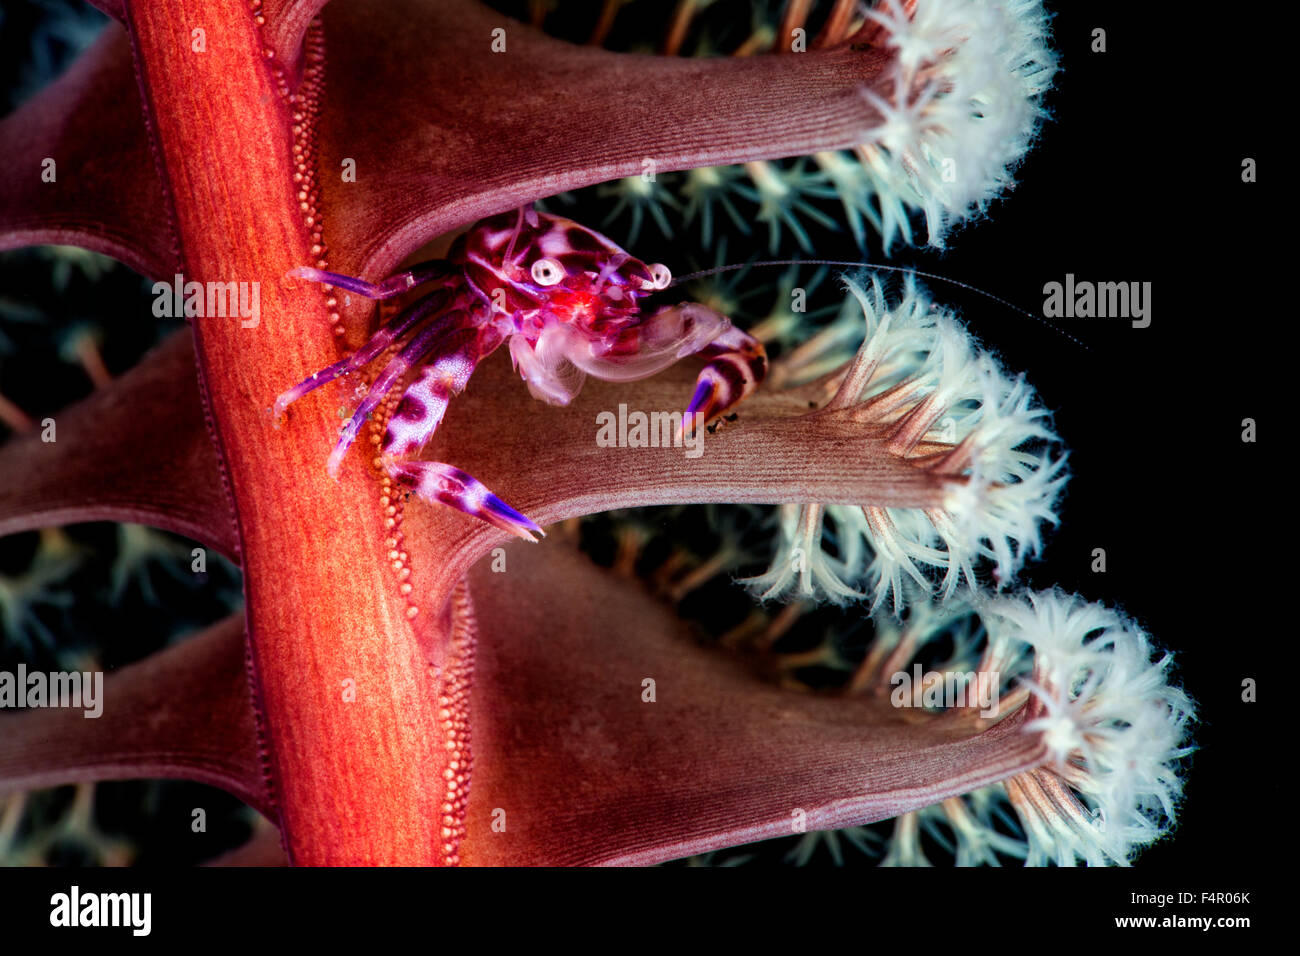 Porcelain Crab Hiding and Feeding in Seapen Home at Night Stock Photo